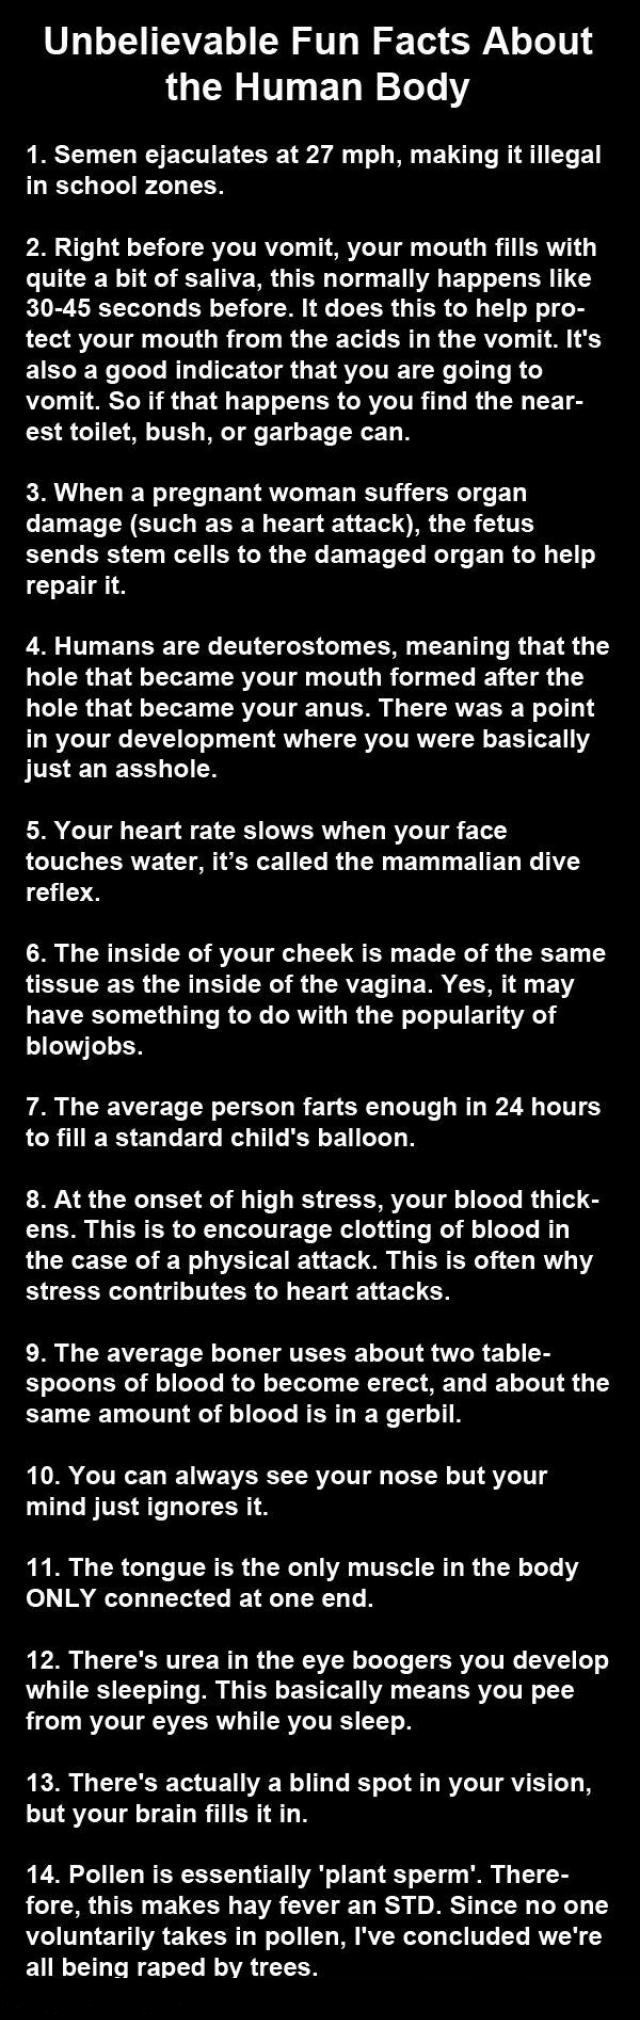 Facts about the body